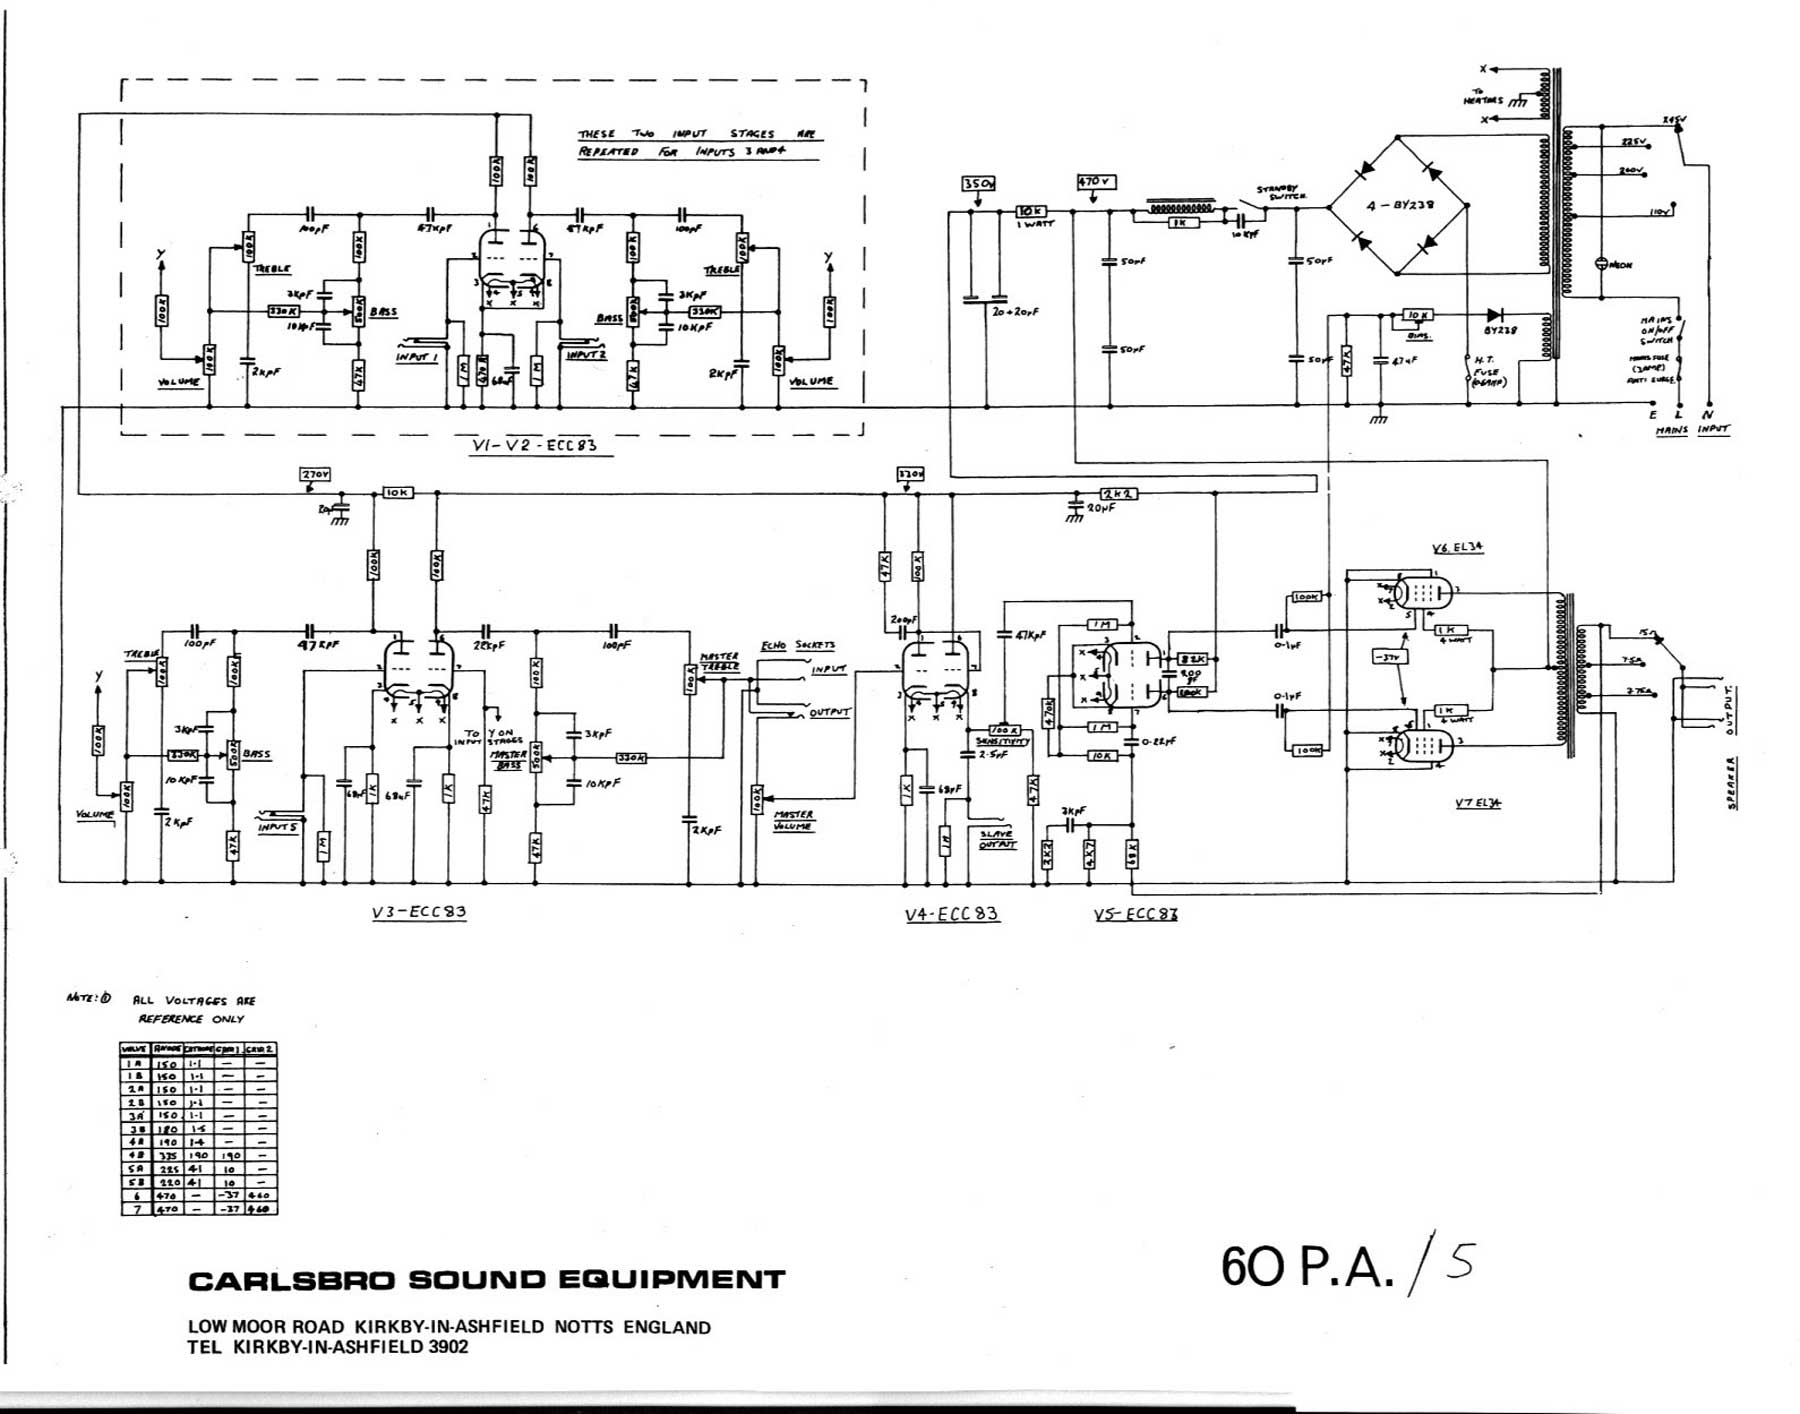 Yamaha Amplifier Schematics Trusted Wiring Diagrams Tube Otl Headphone Circuit Diagram Amplifiercircuit Carlsbro 60 Pa 5 Amp Schematic Kits Return To Carslbro Page